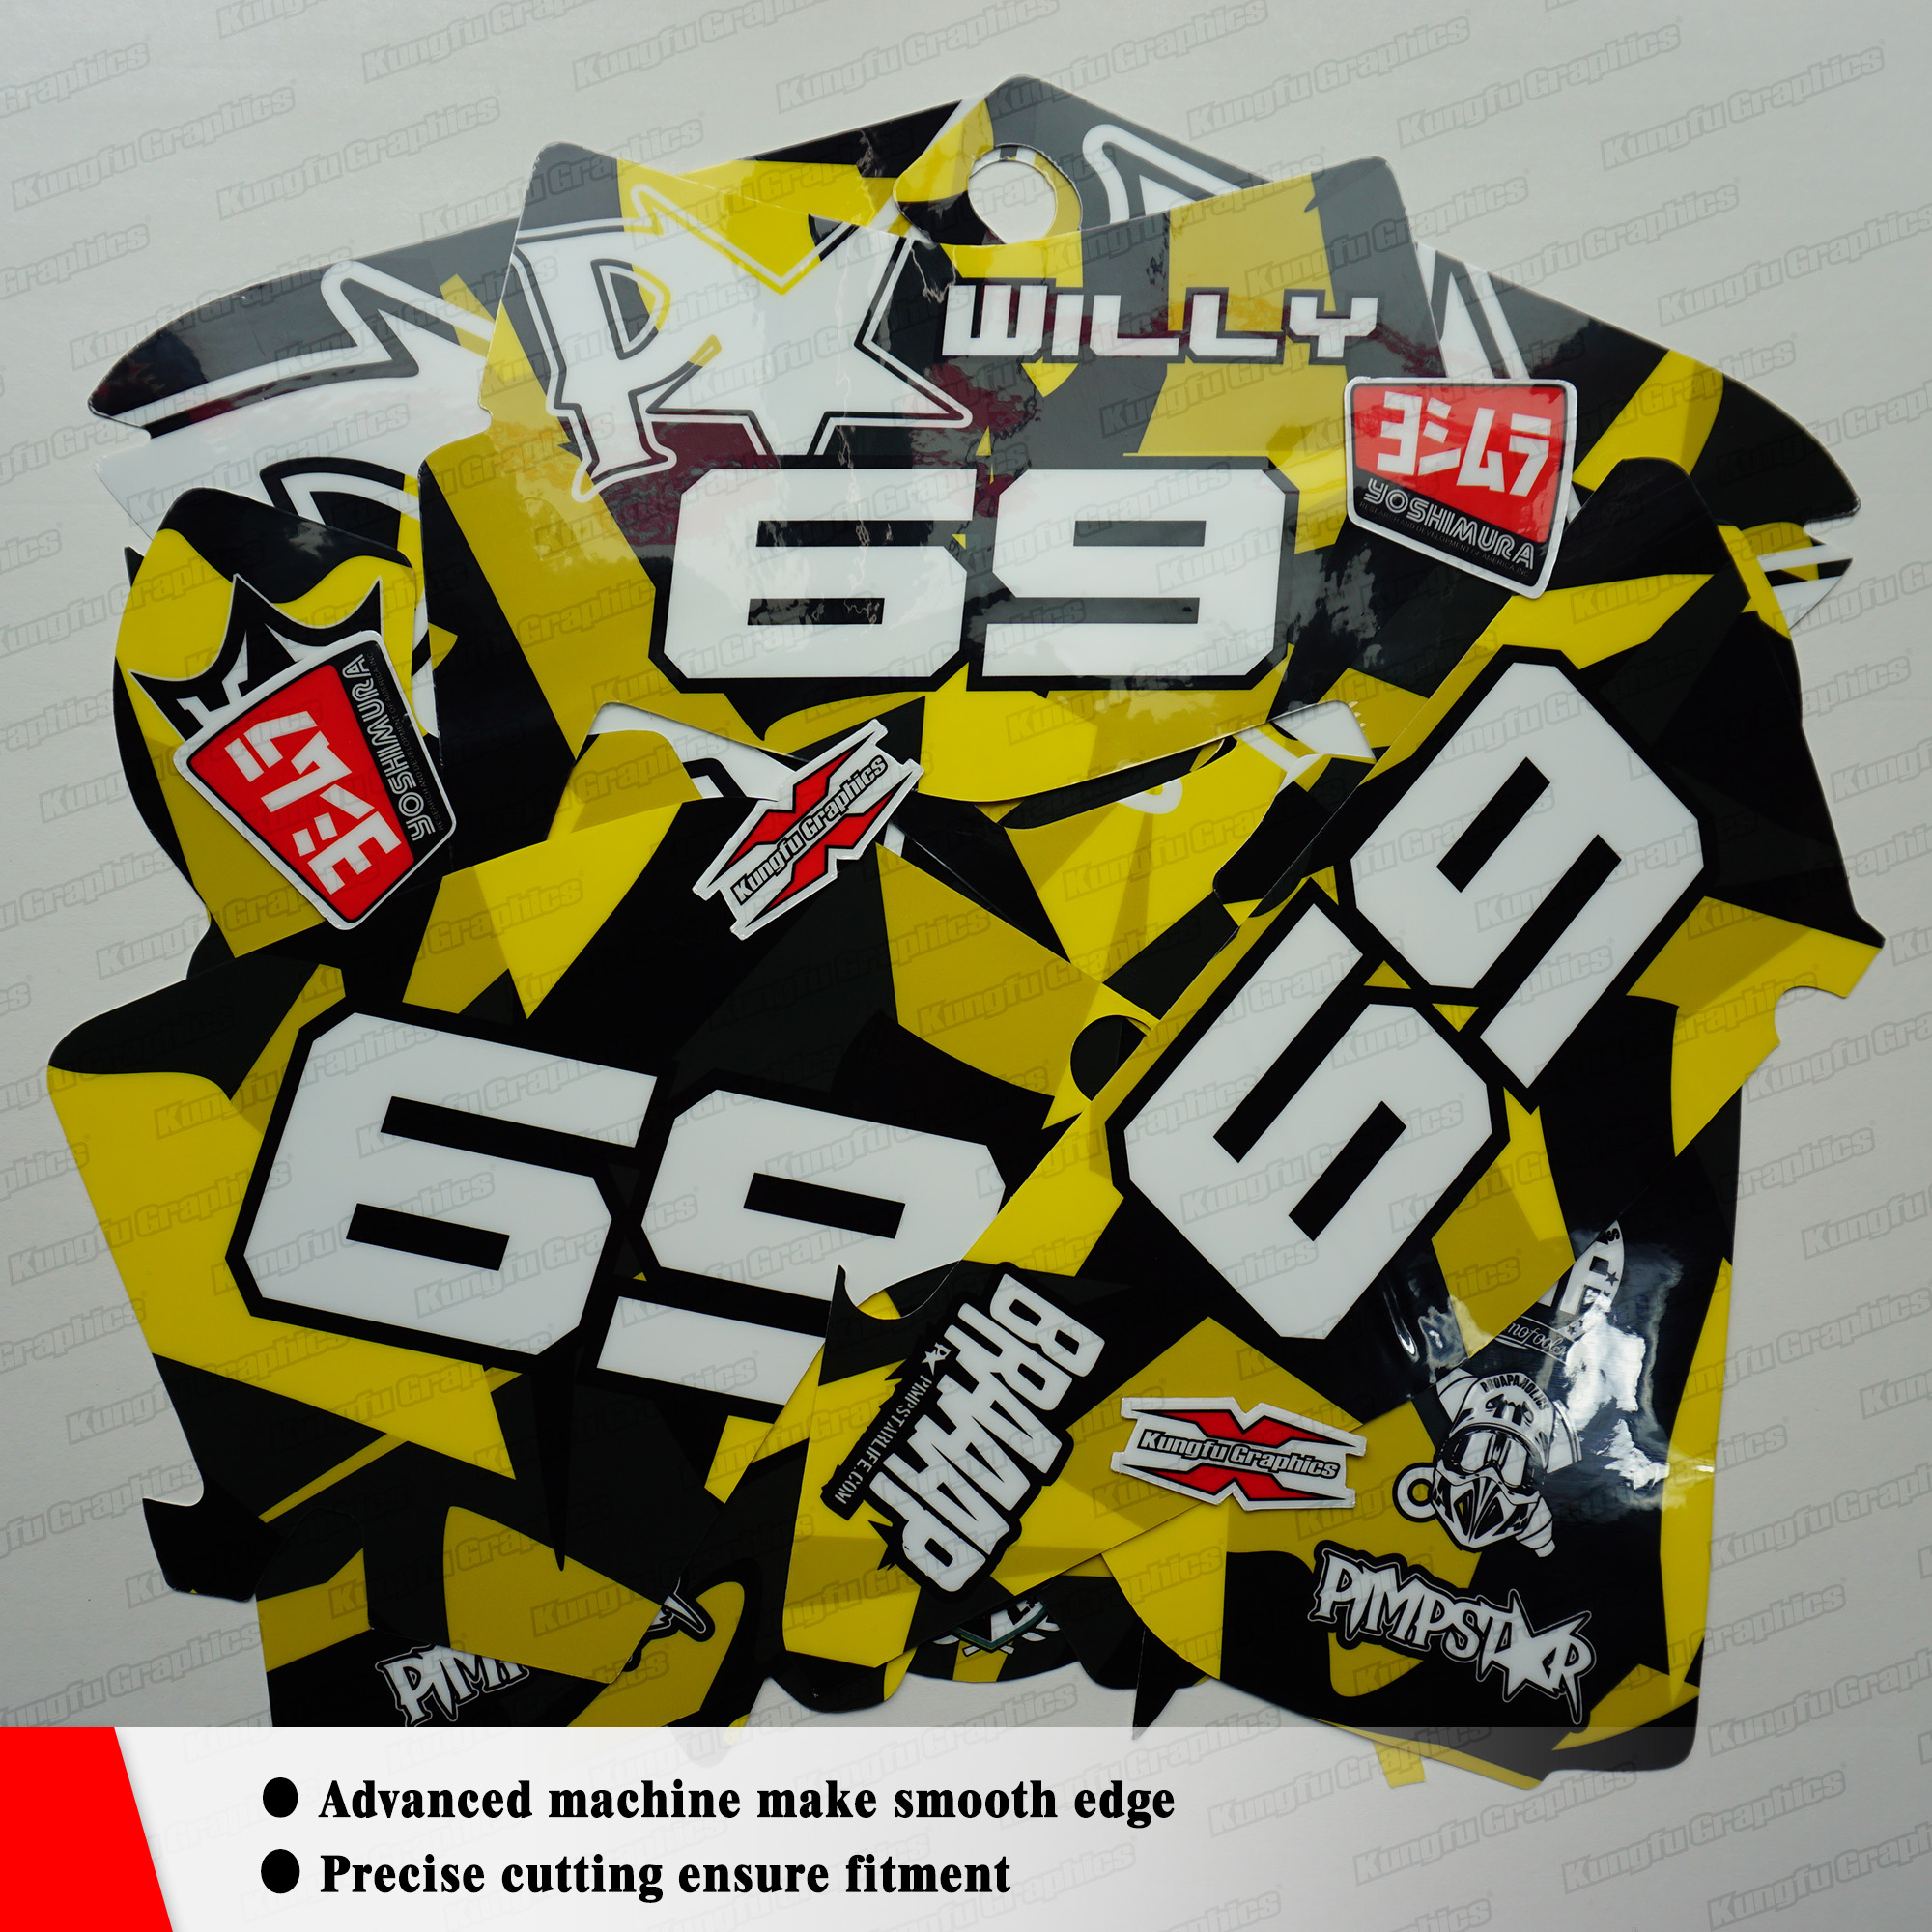 Kungfu graphics motocross custom stickers vinyl decals kit for beta 250 300 350 390 430 480 rr 2018 2019 style no btrr1819001 in decals stickers from